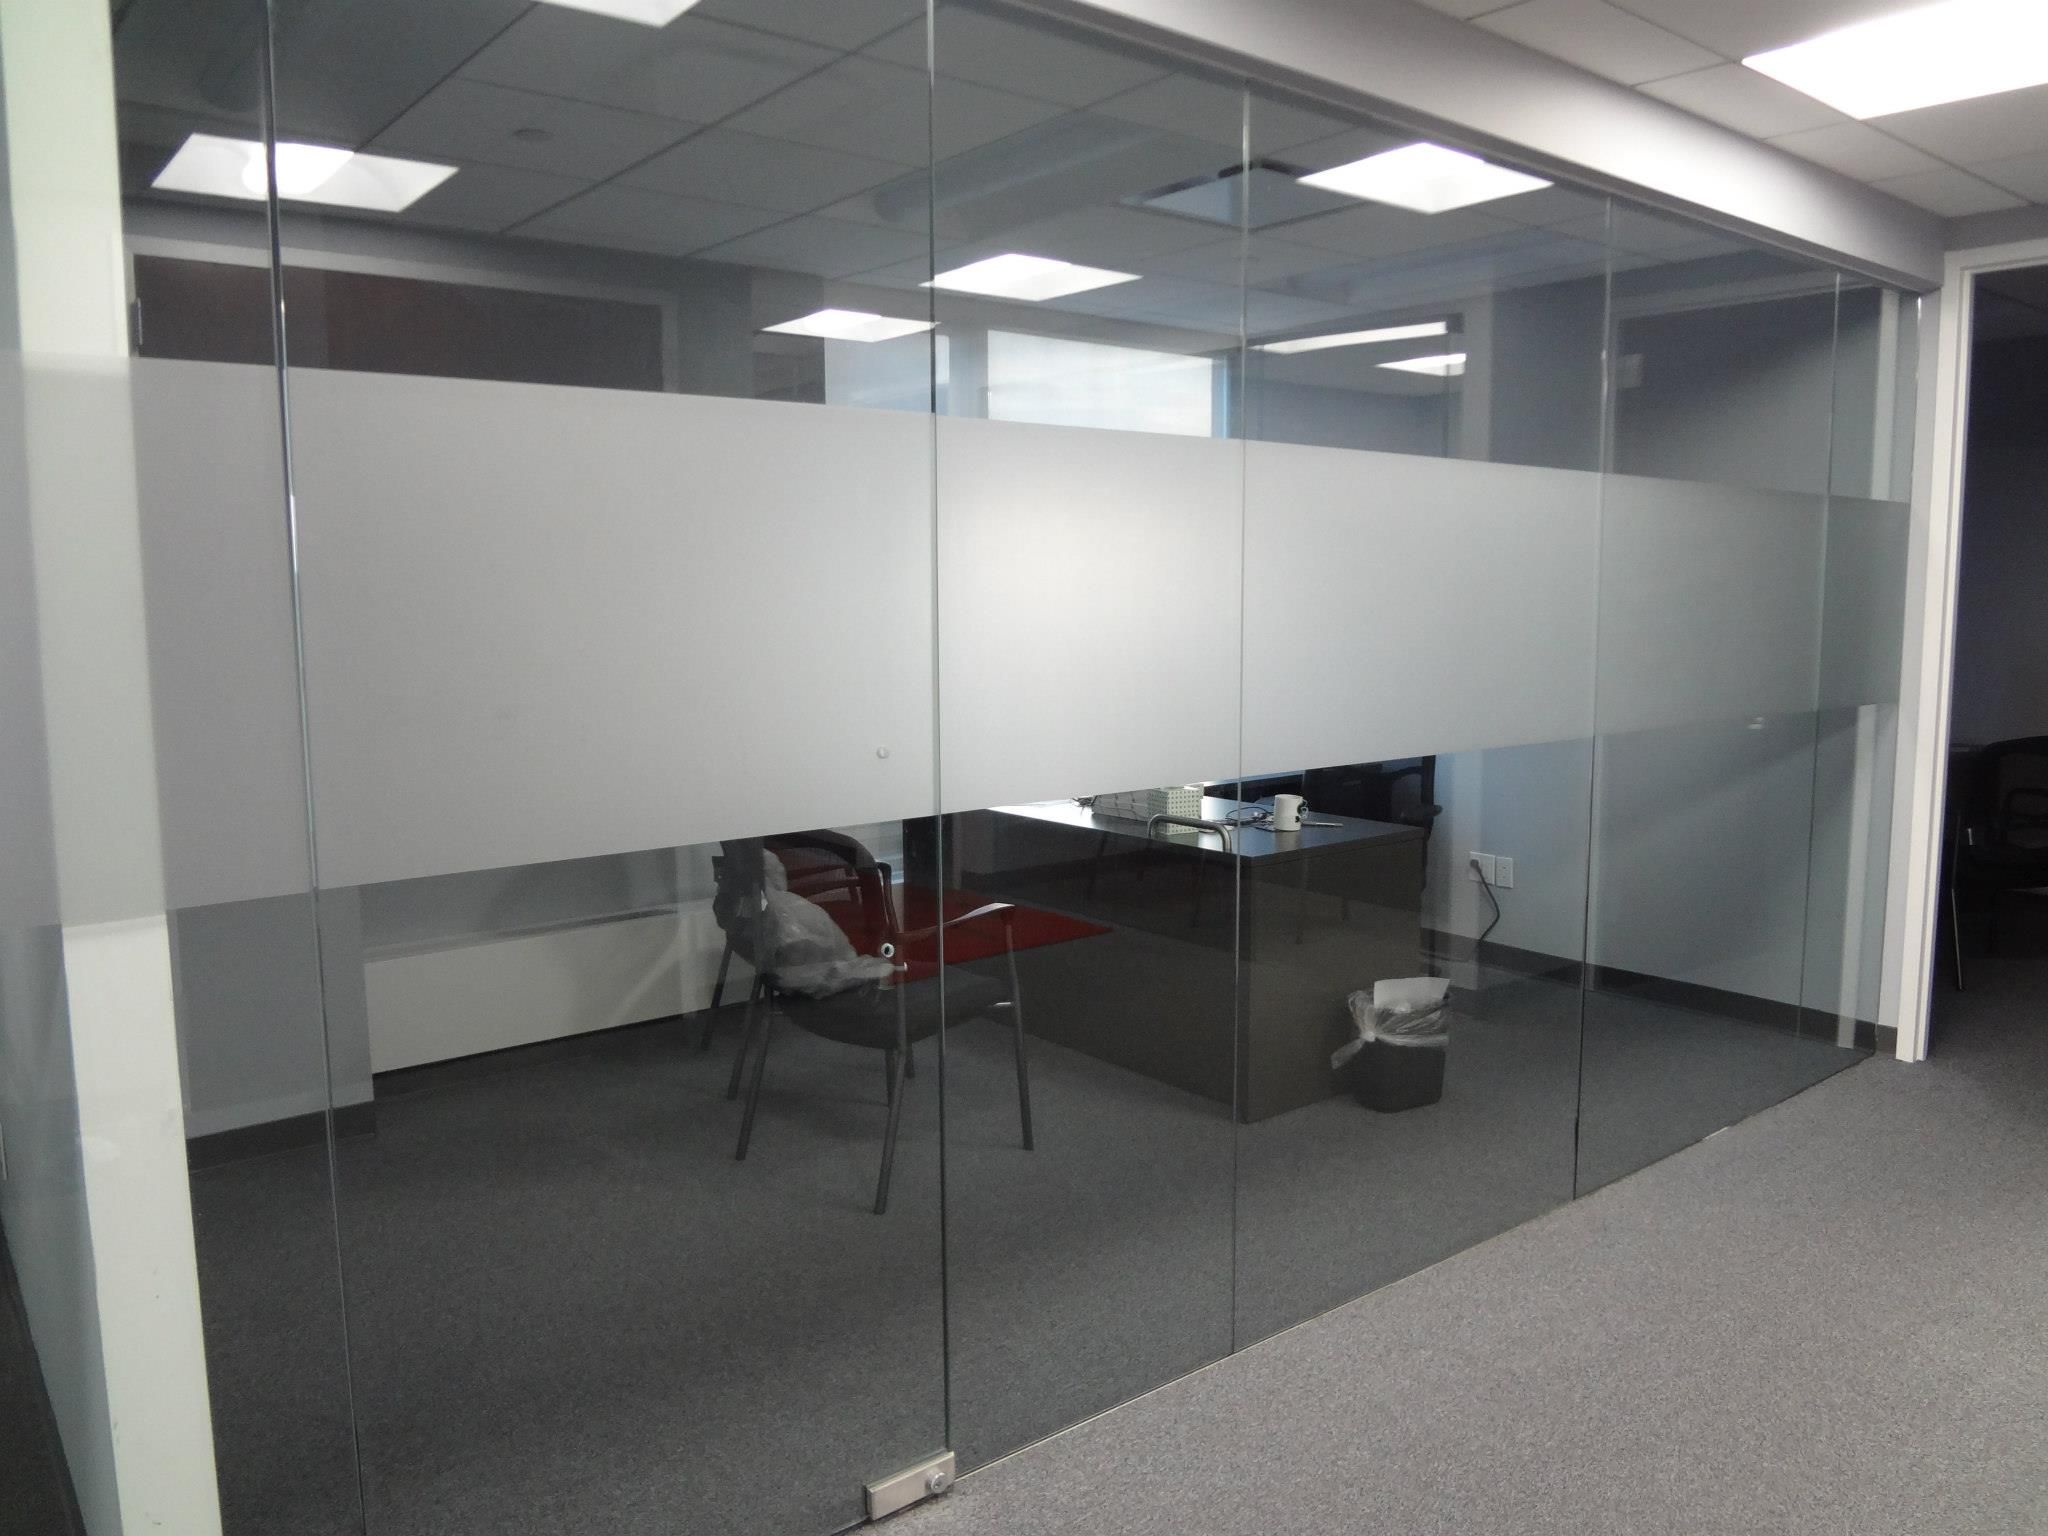 Etched glass doors privacy glass door inserts bamboo pictures to pin - Frosted Banding For Office Glass Panels Nyc Frosted Business Glass Panels Nyc Frosted Vinyl Signage For Glass Nyc Frosted Office Glass Door Nyc